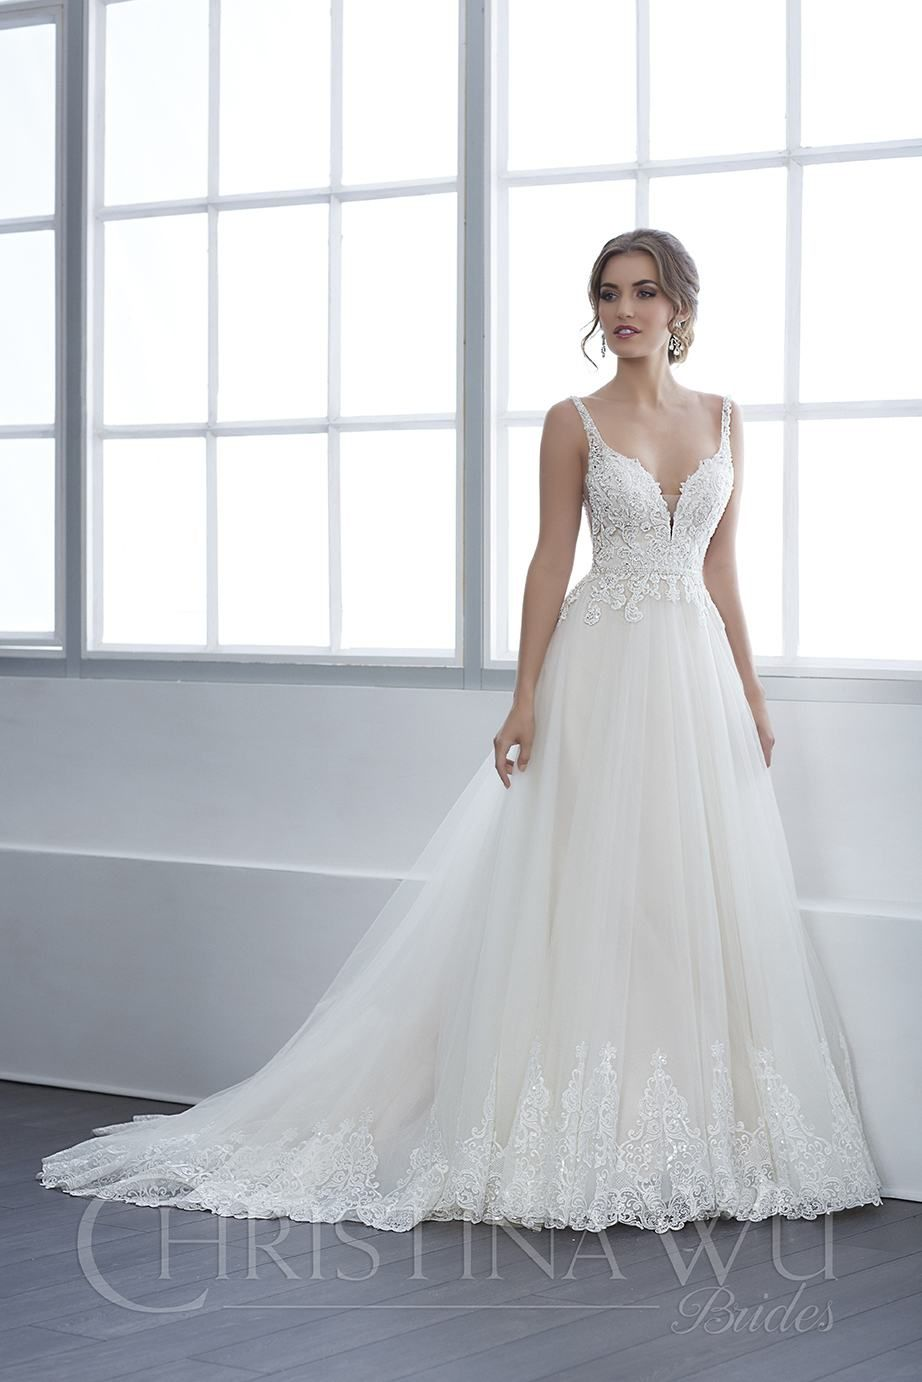 A Plunging Neckline And Sheer Side Panels Add A Perfect Update To This Flattering A Line Shape Beaut Backless Wedding Dress Wedding Dresses Ball Gowns Wedding